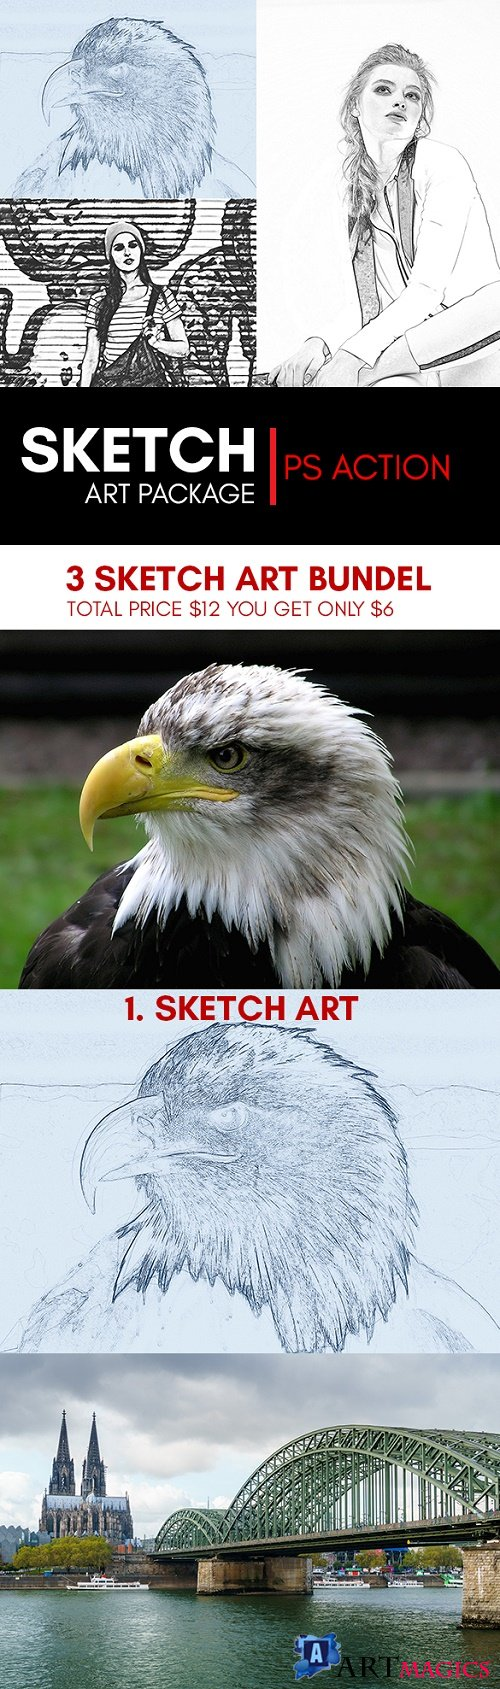 3 Sketch Art Bundle Photoshop Action 22035317